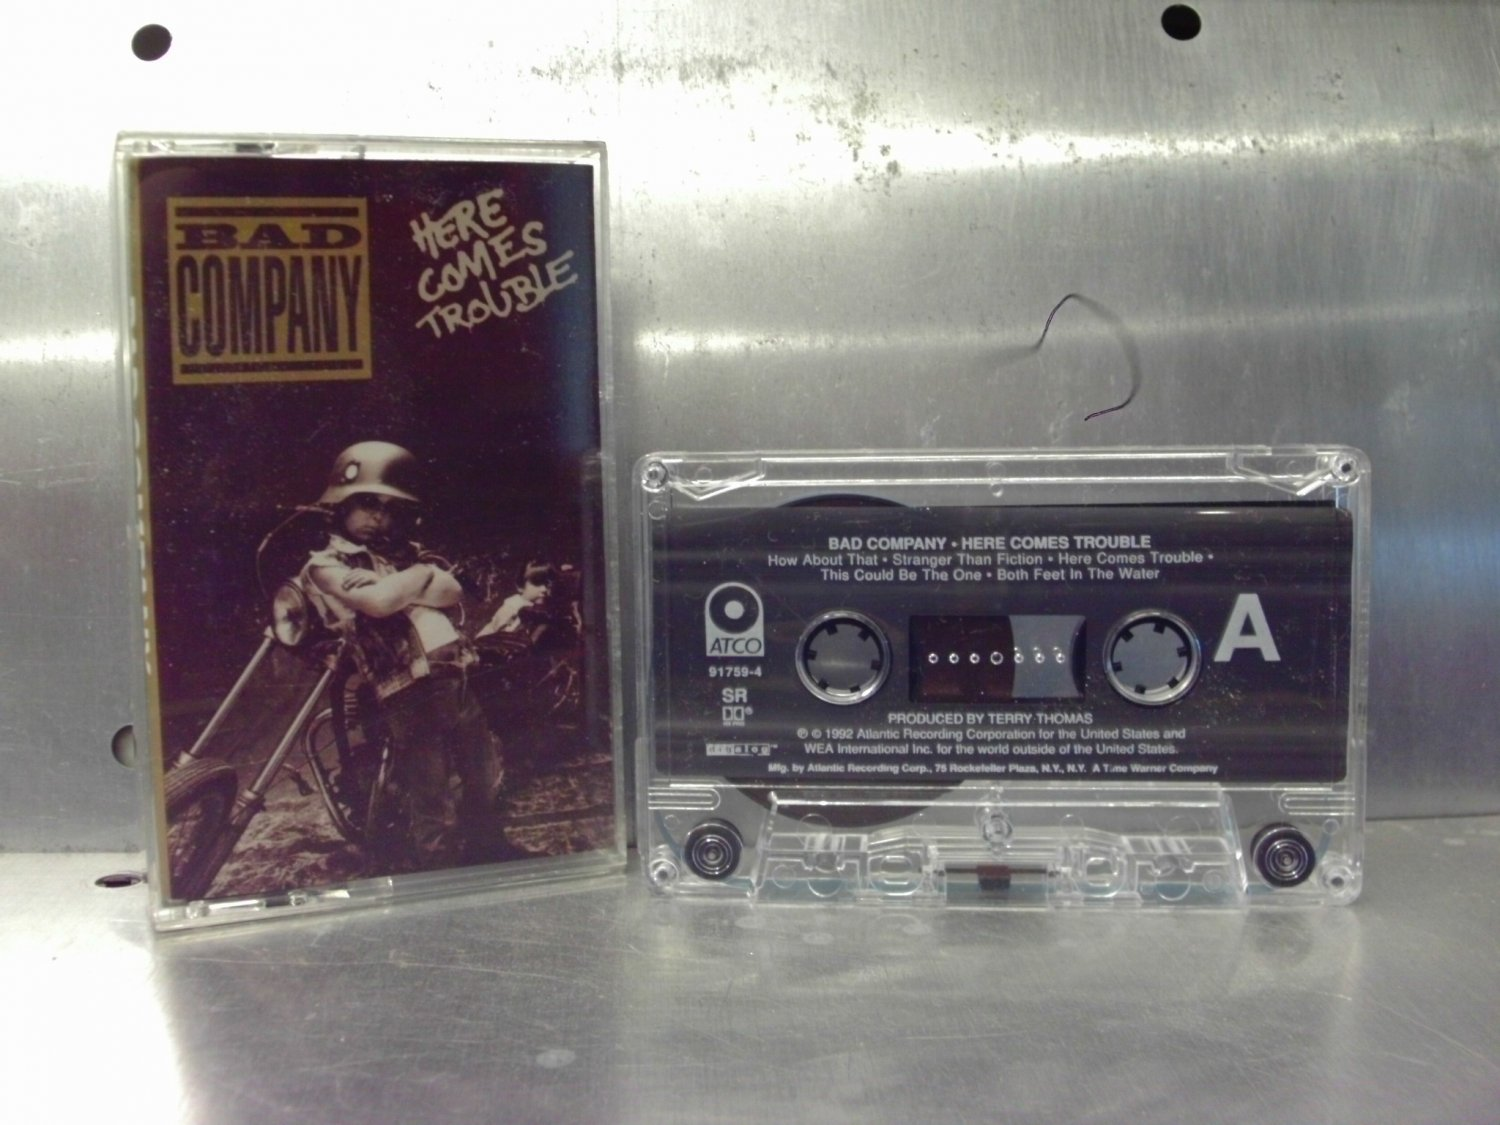 Bad Company - Here Comes Trouble Cassette Tape A1-21